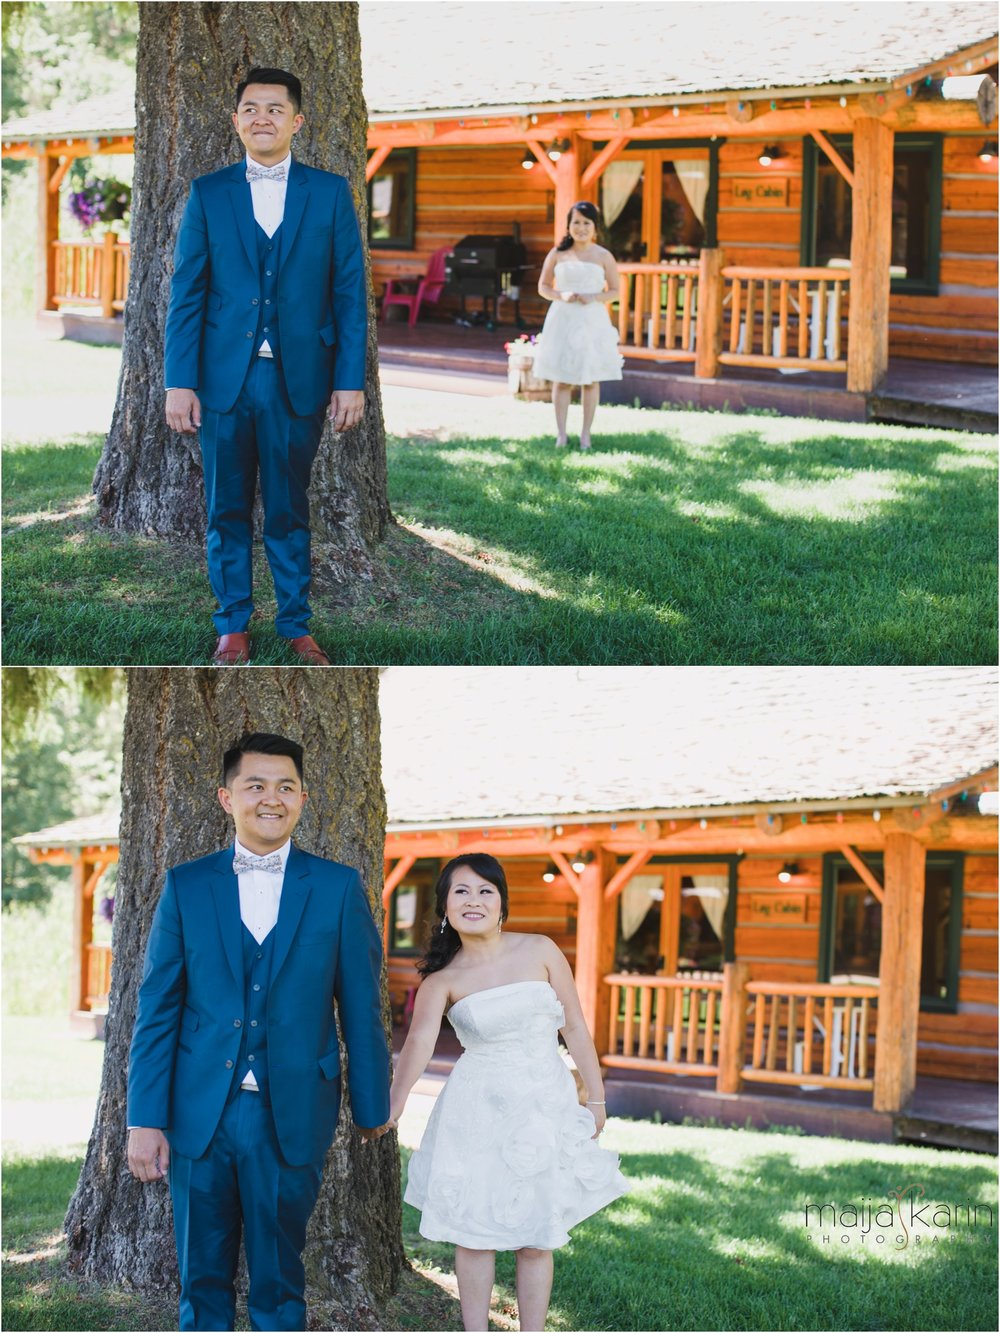 Mountain-Springs-Lodge-Leavenworth-Washington-Wedding-Photographer-Majiin-Karin-Photography_10.jpg